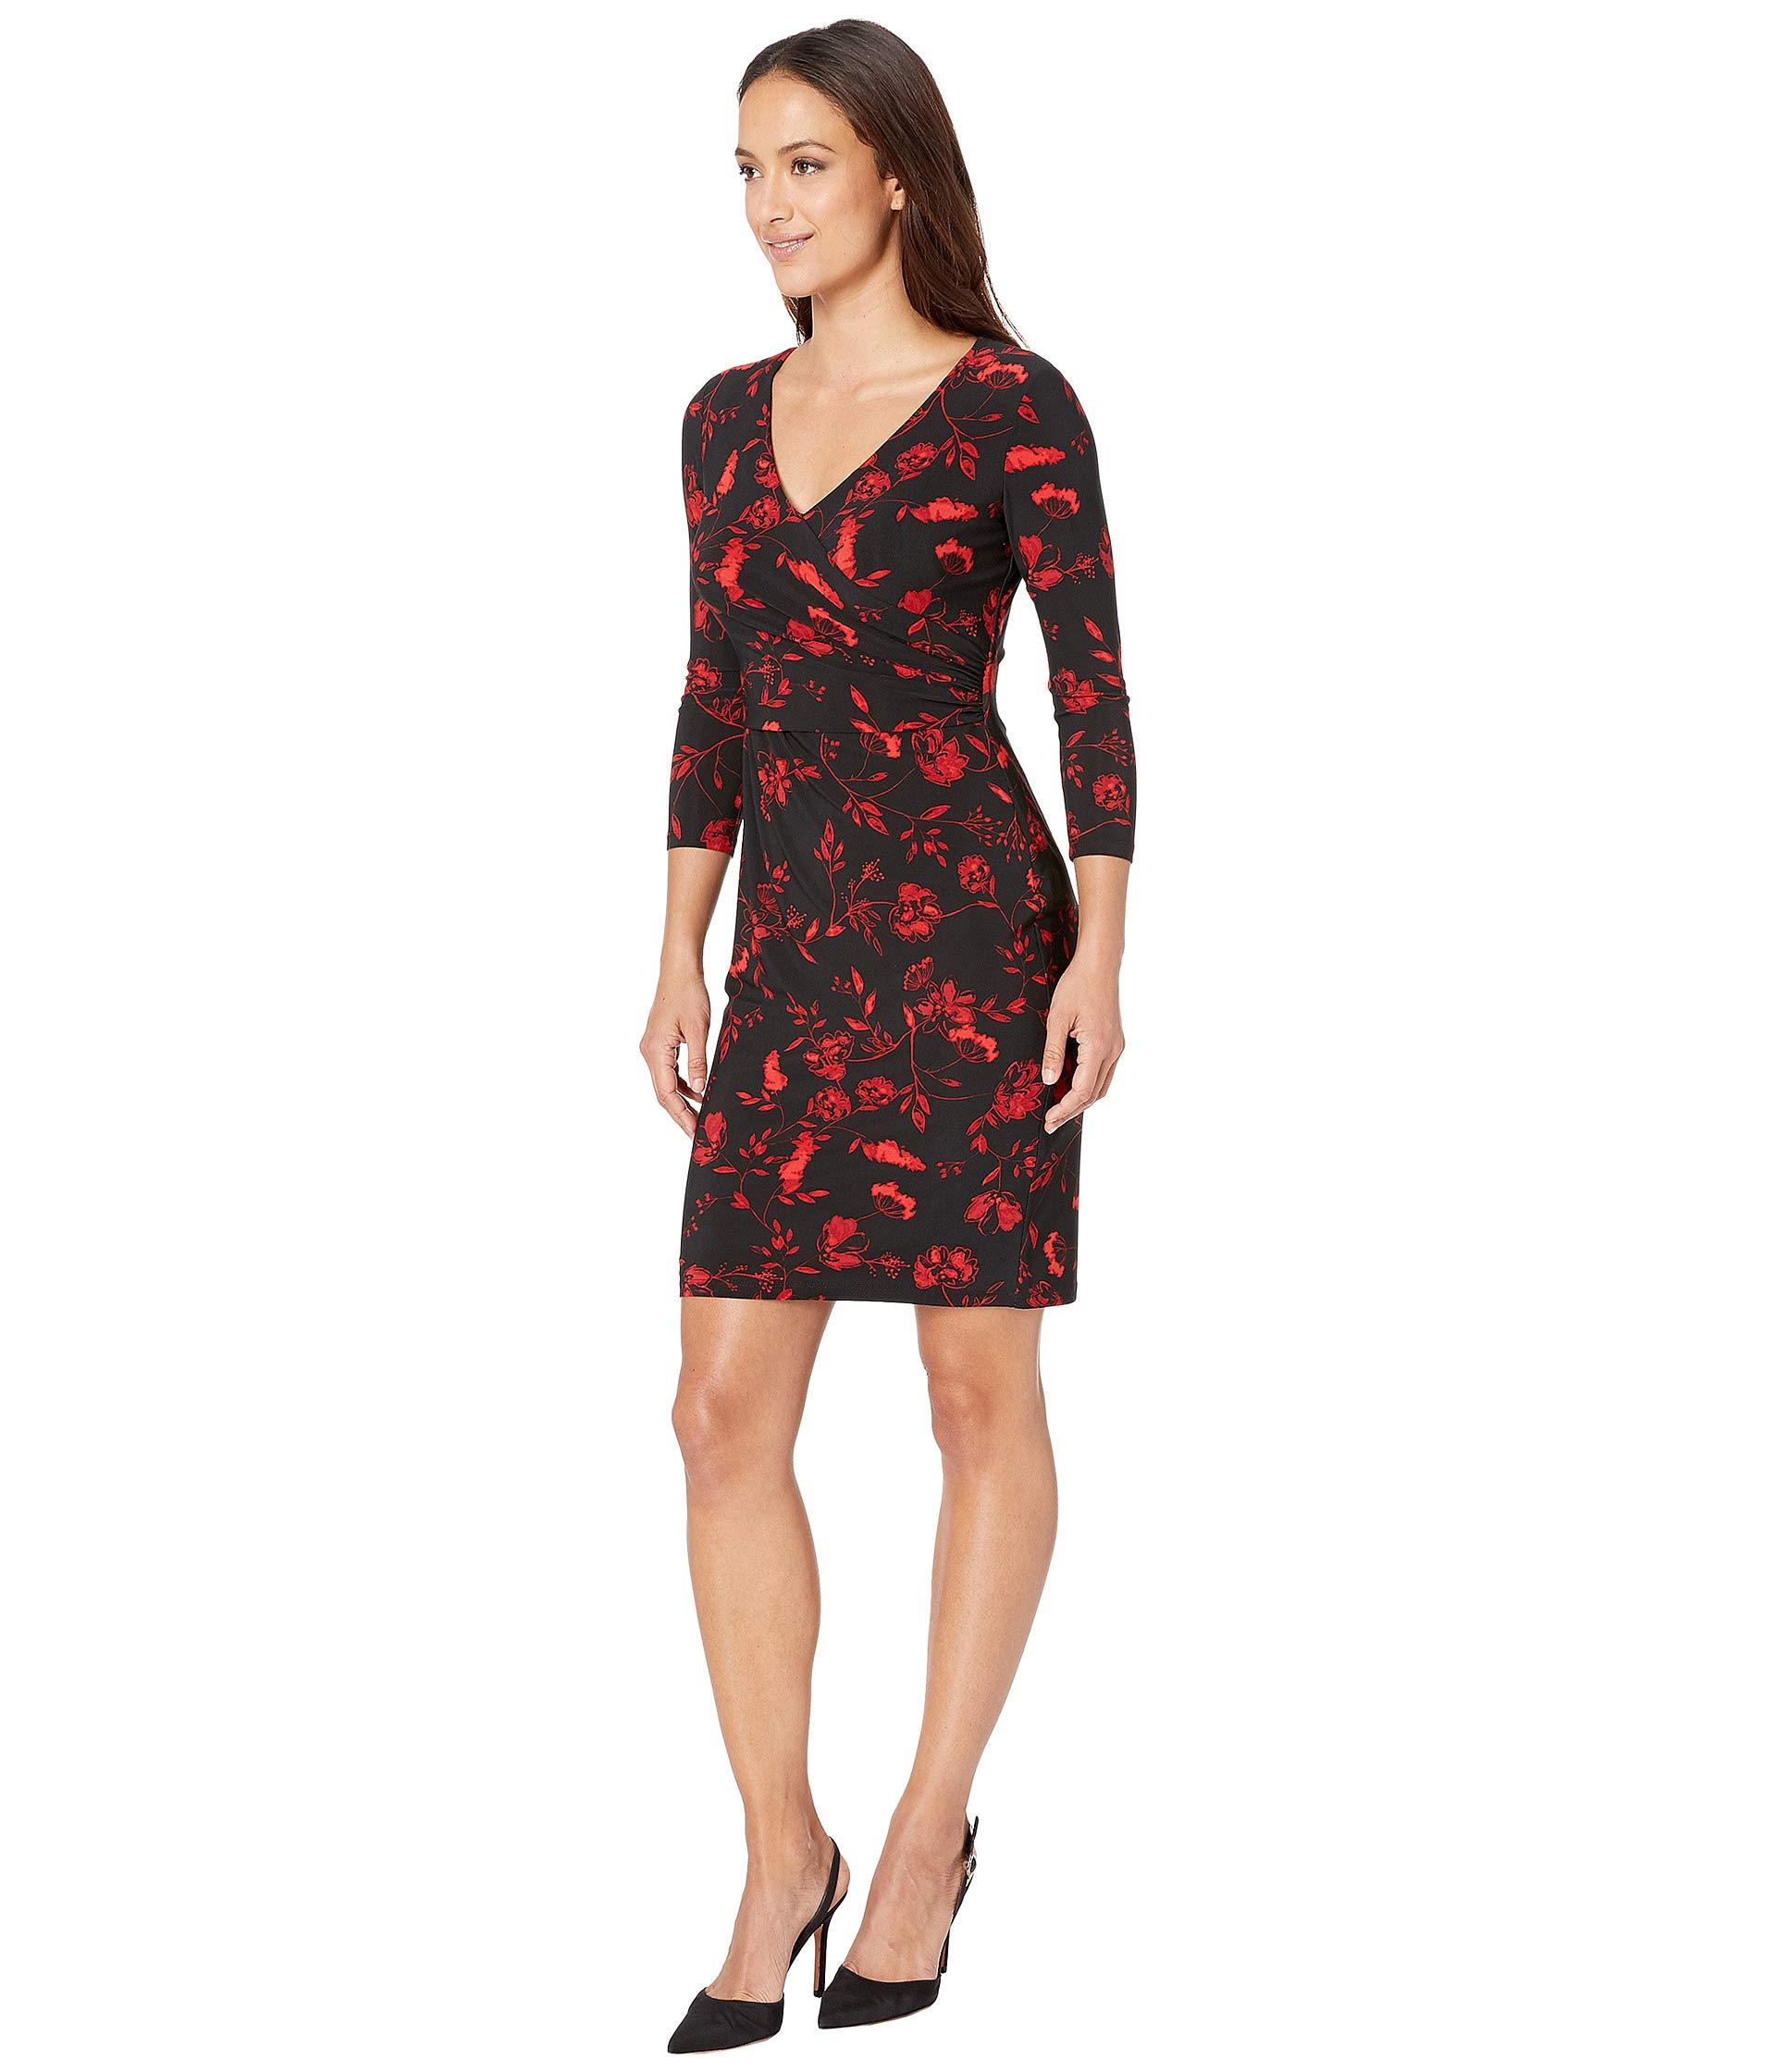 B759 Day Bellaire Ralph Petite Floral Dress multi red Bethy Lauren Black Fp4qt